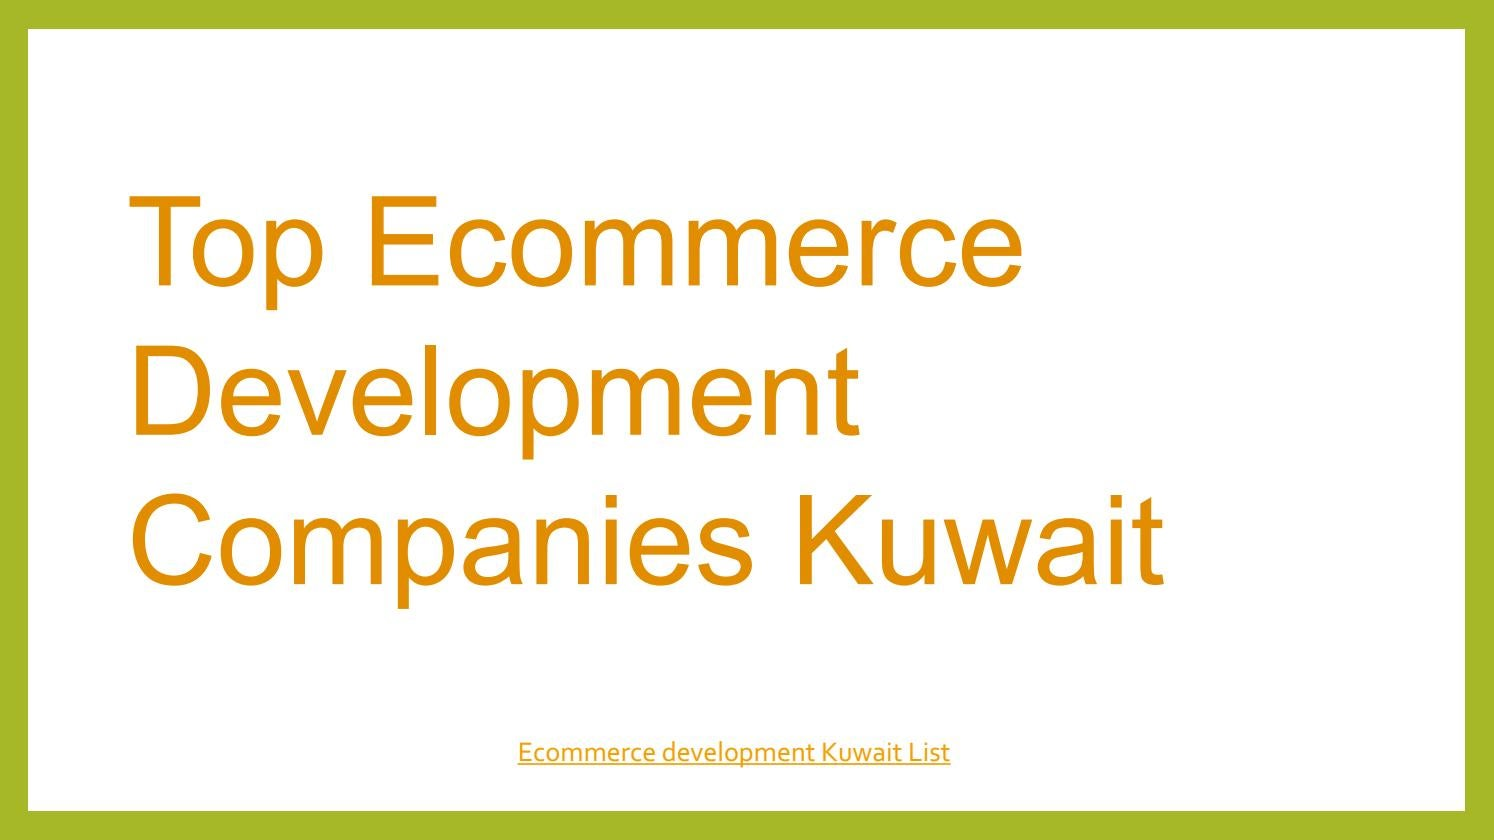 Top ecommerce development companies Kuwait| Ecommerce Kuwait